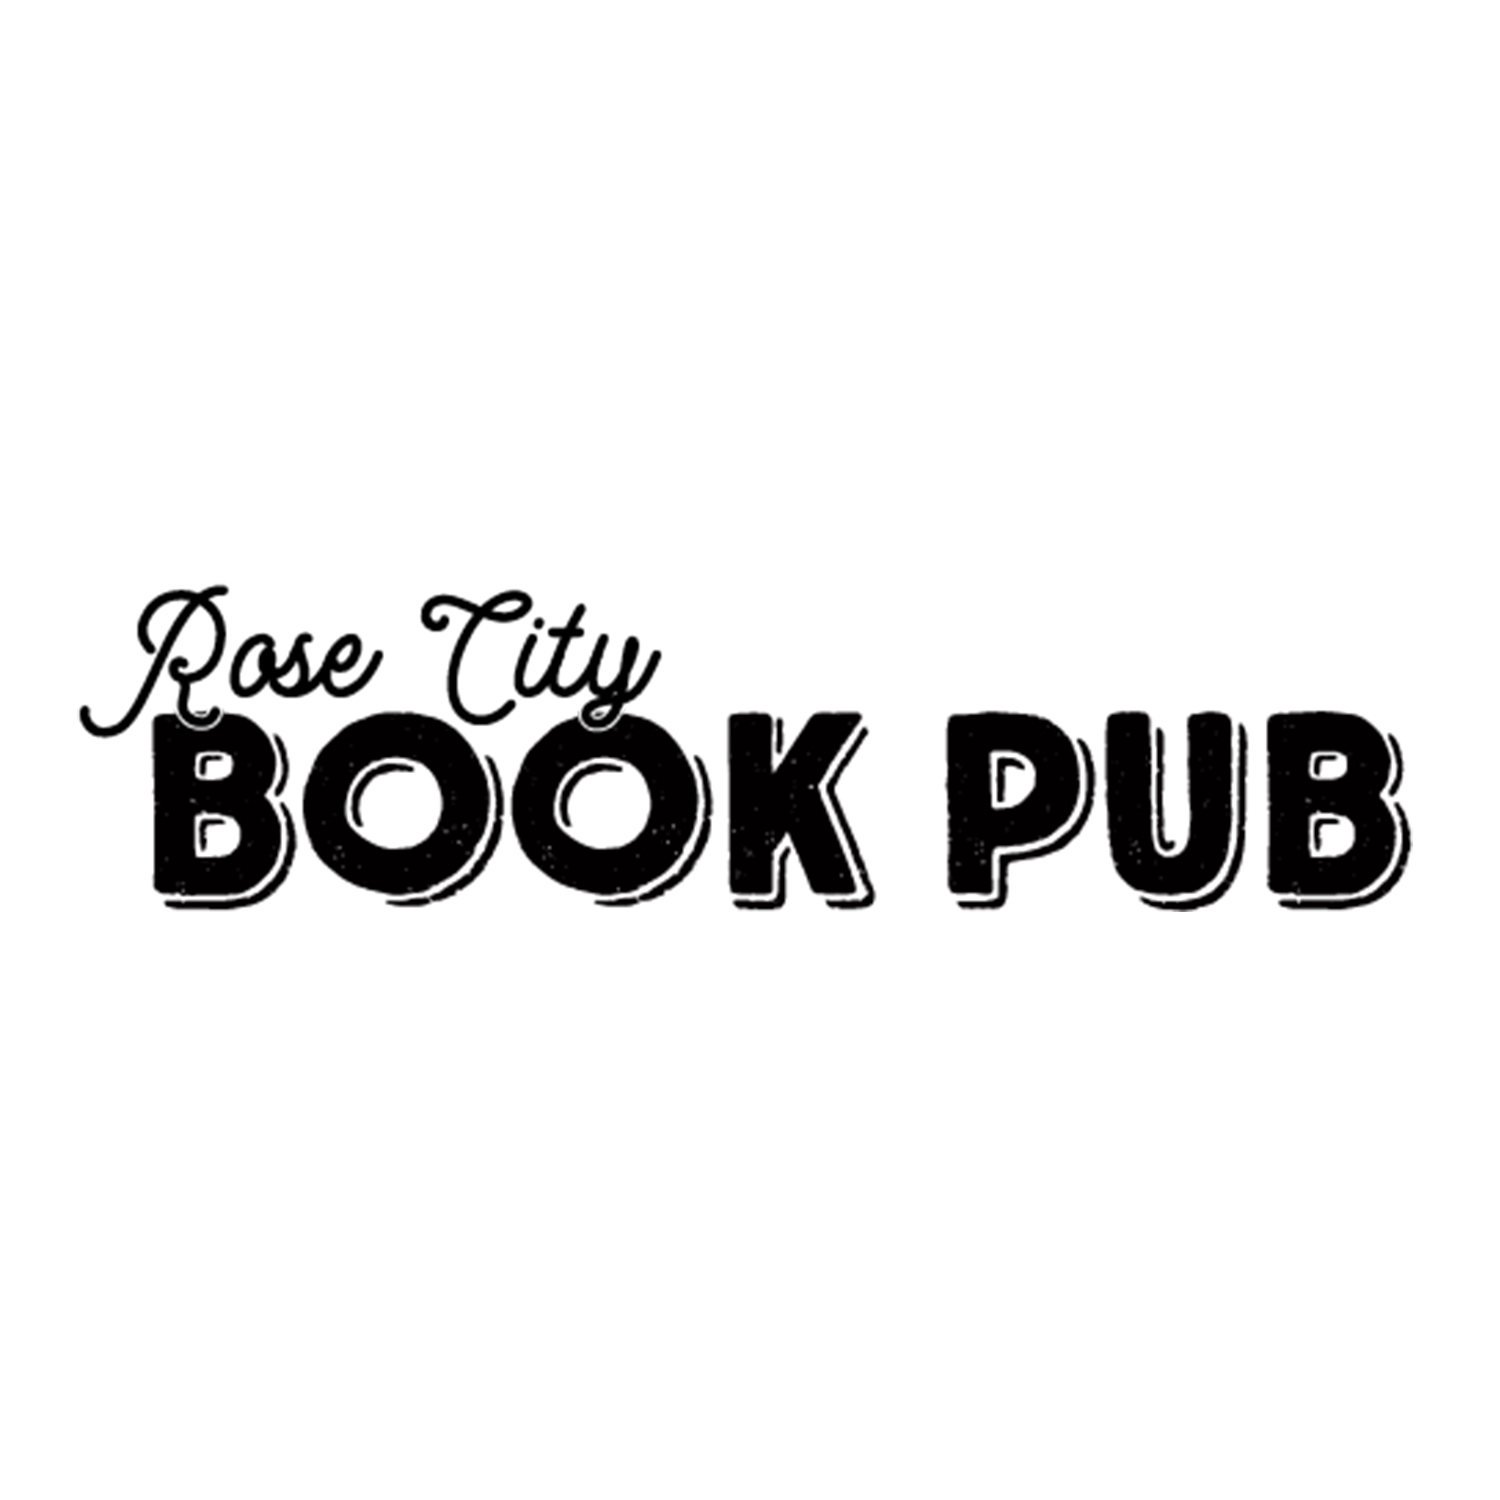 Rose City Book Pub Web.jpg